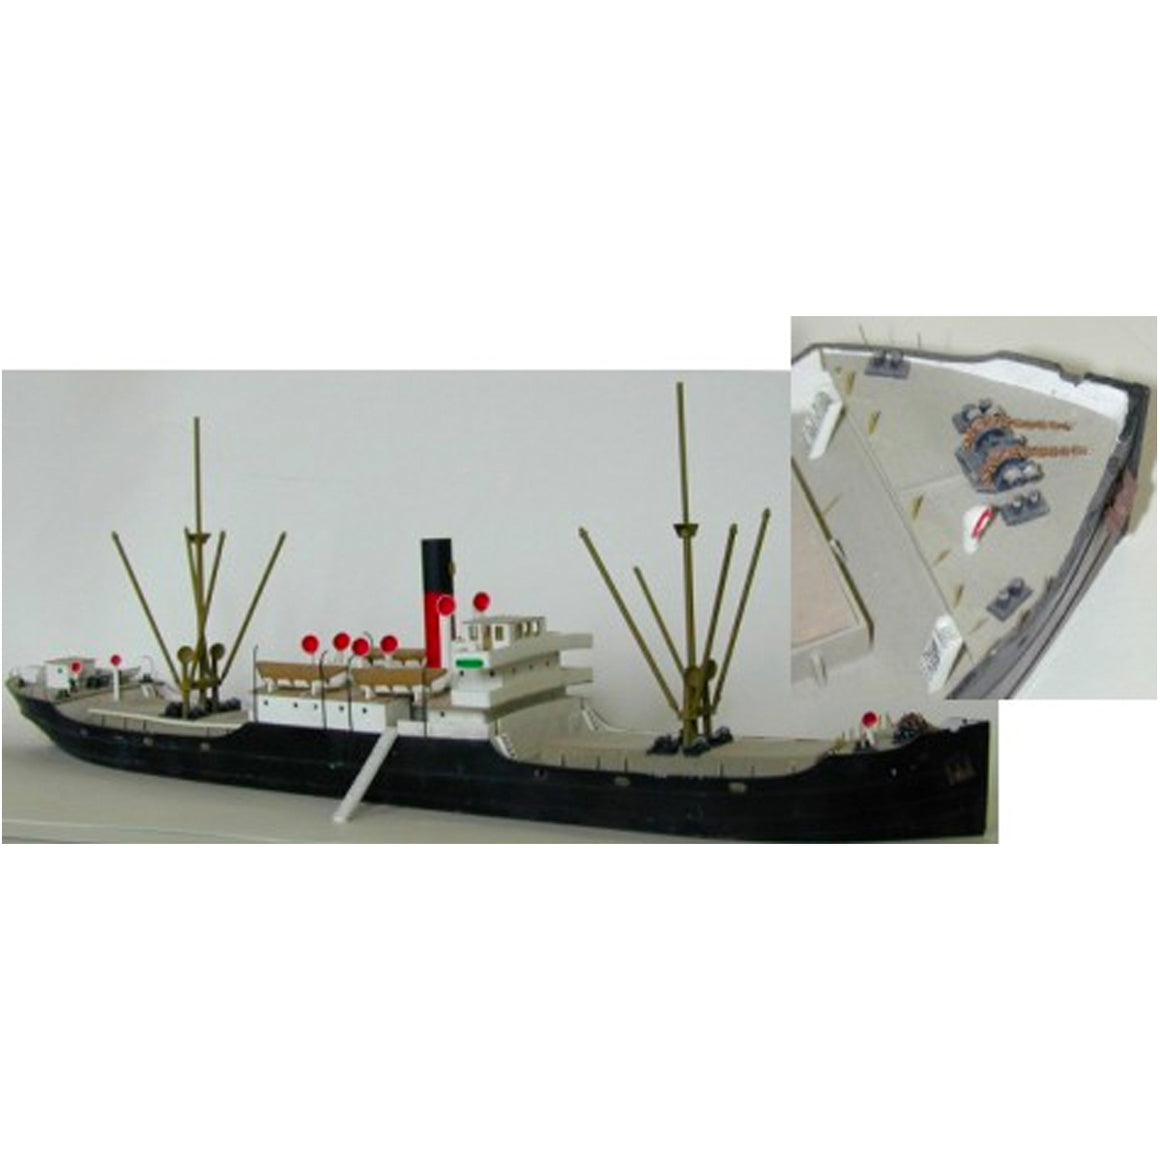 N Scale: Laker Class Tramp Steamer Ship - Kit